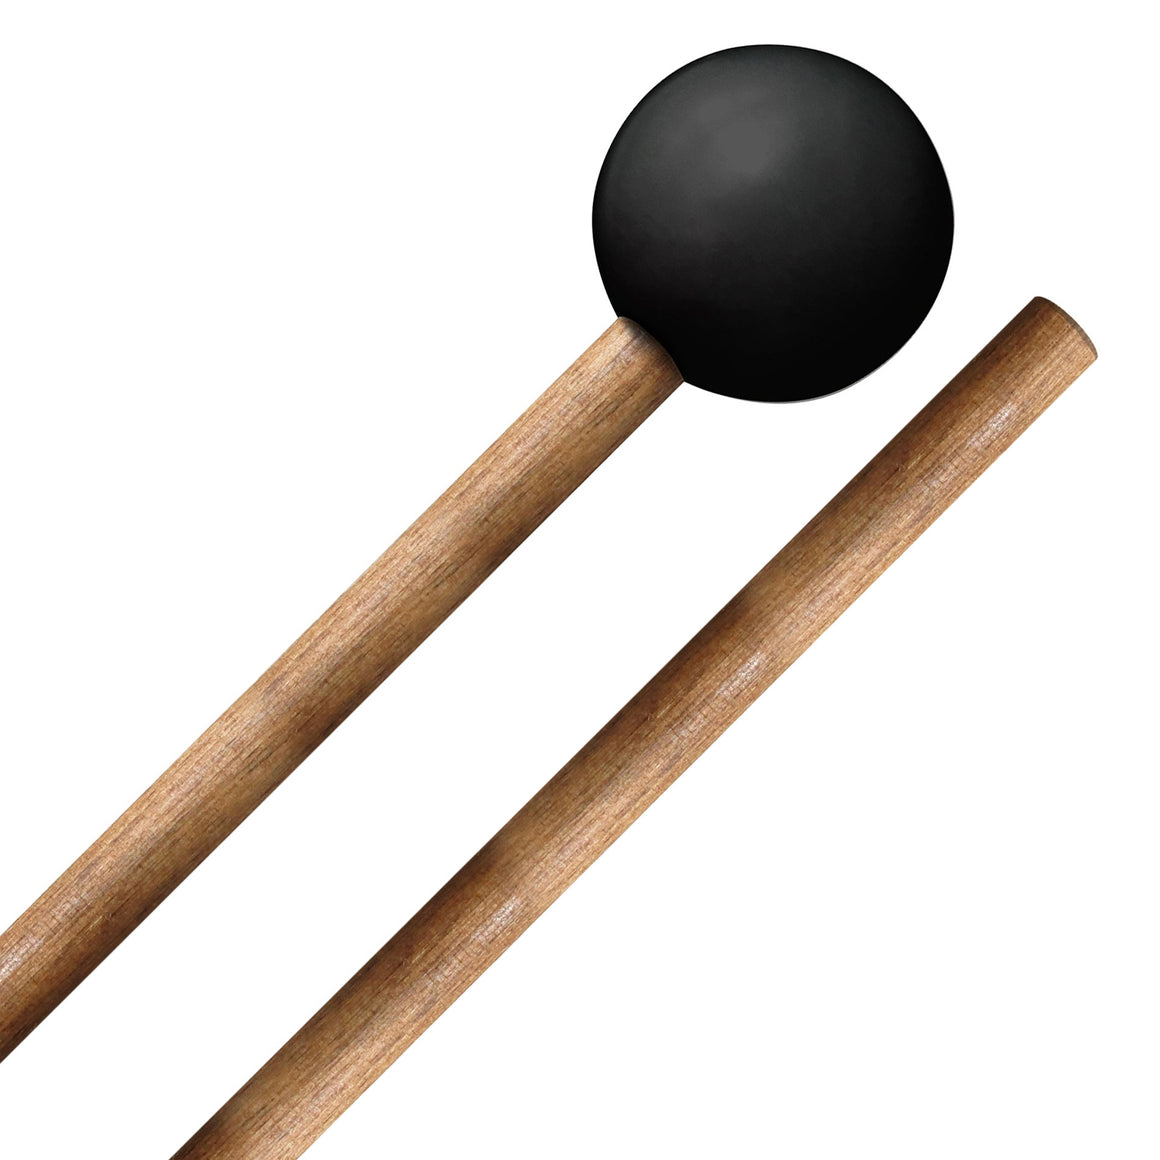 TIMBER DRUM TMD2 Soft Rubber Mallets